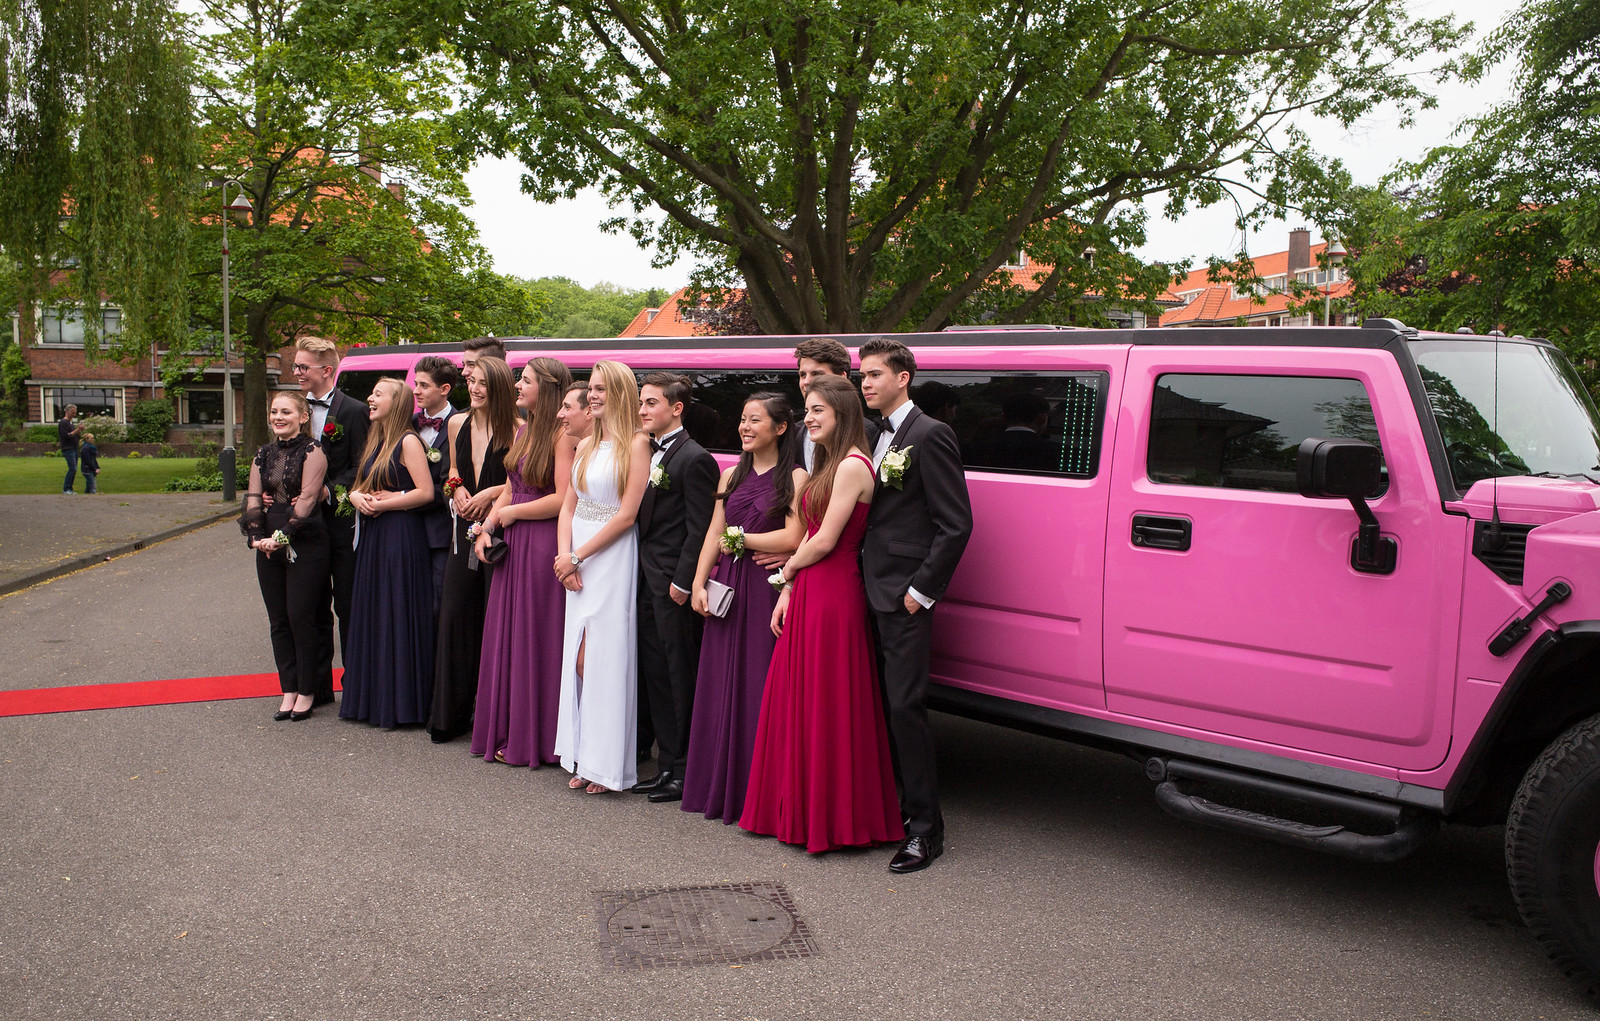 Limo party 6